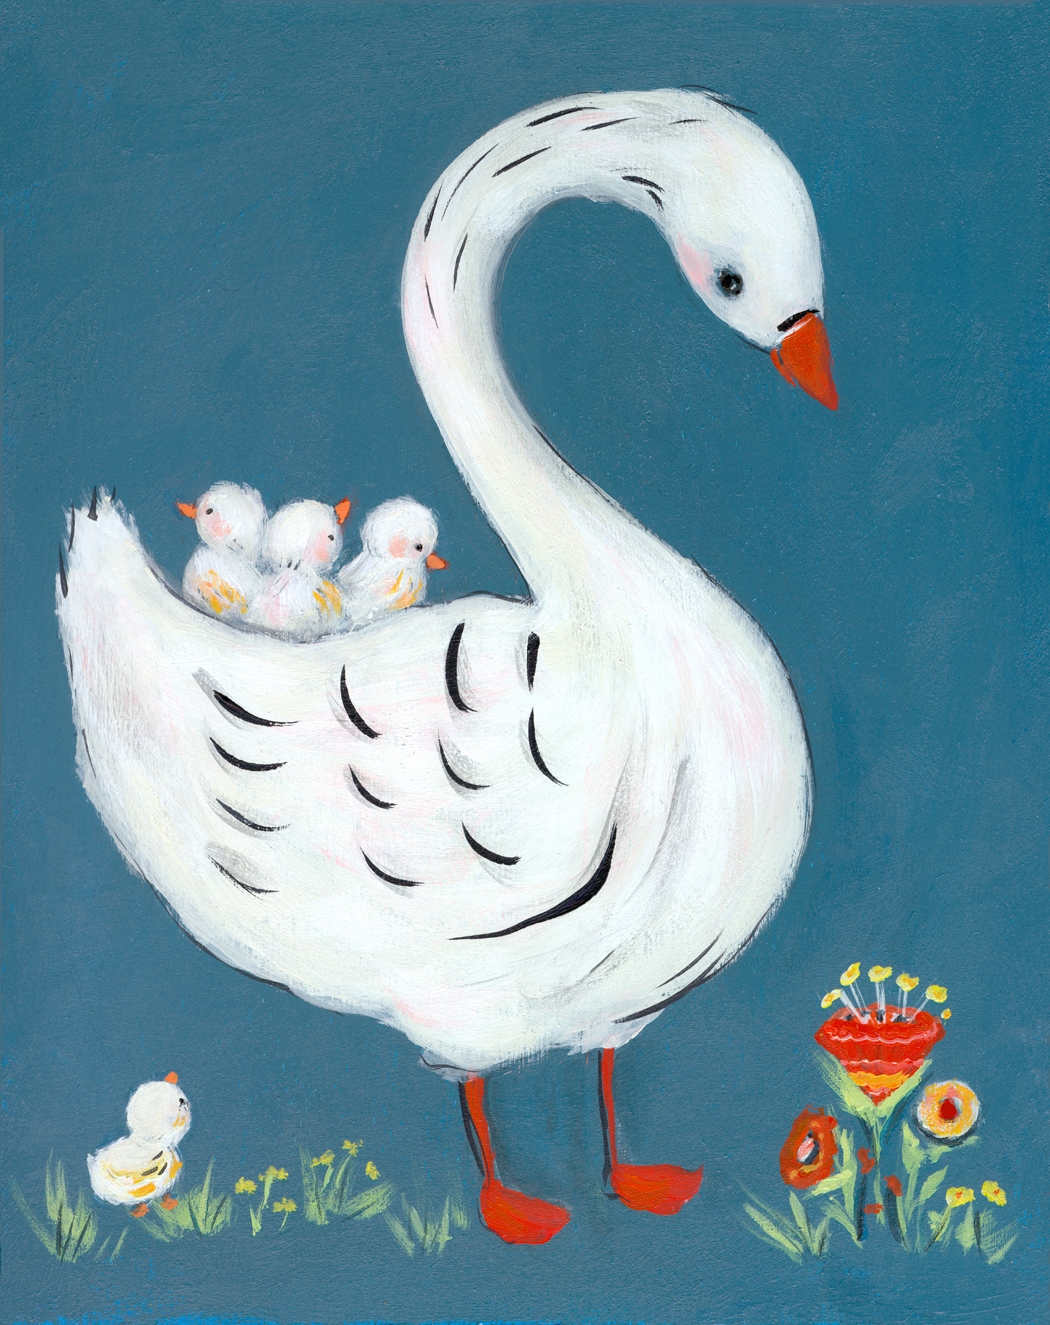 allyn_howard_Swan_with_babies.jpg